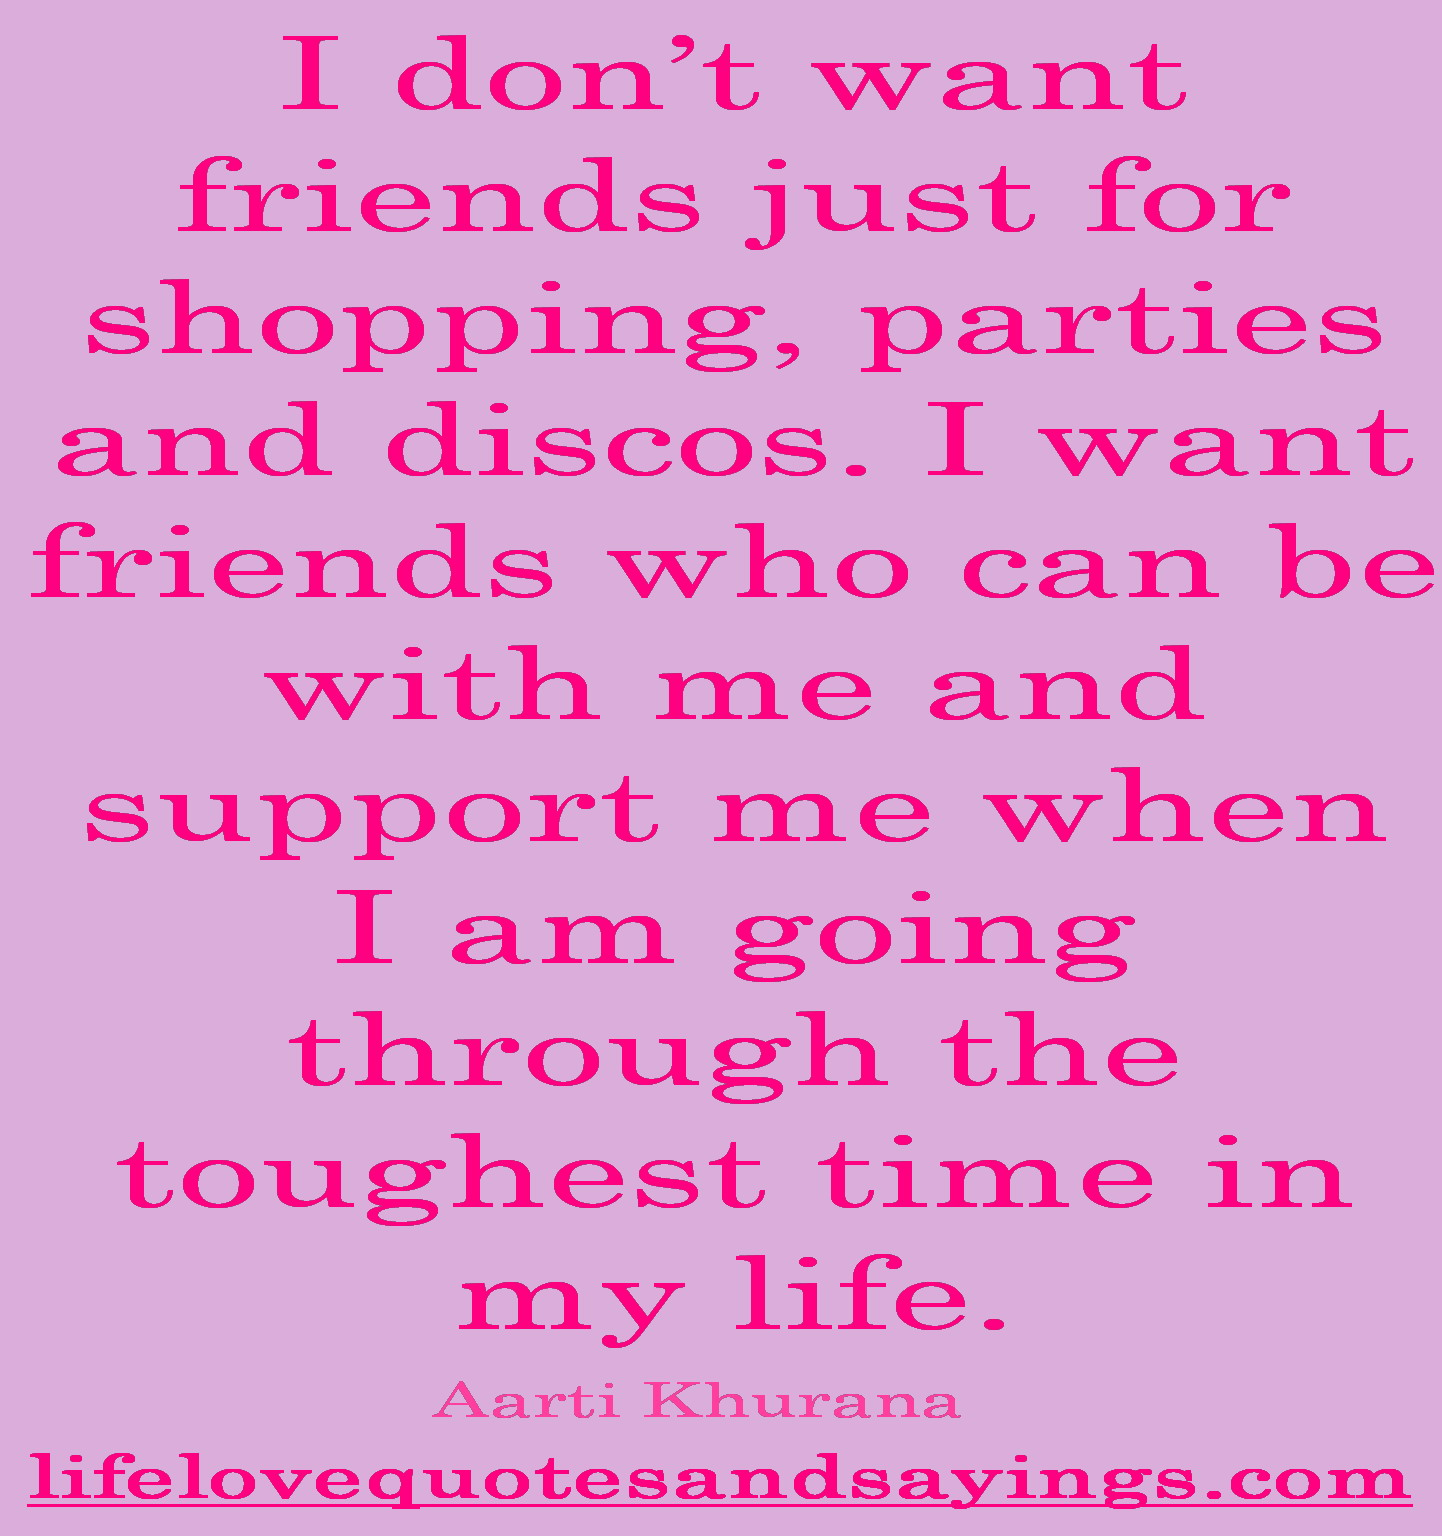 Quotes about Shopping with friends (77 quotes)